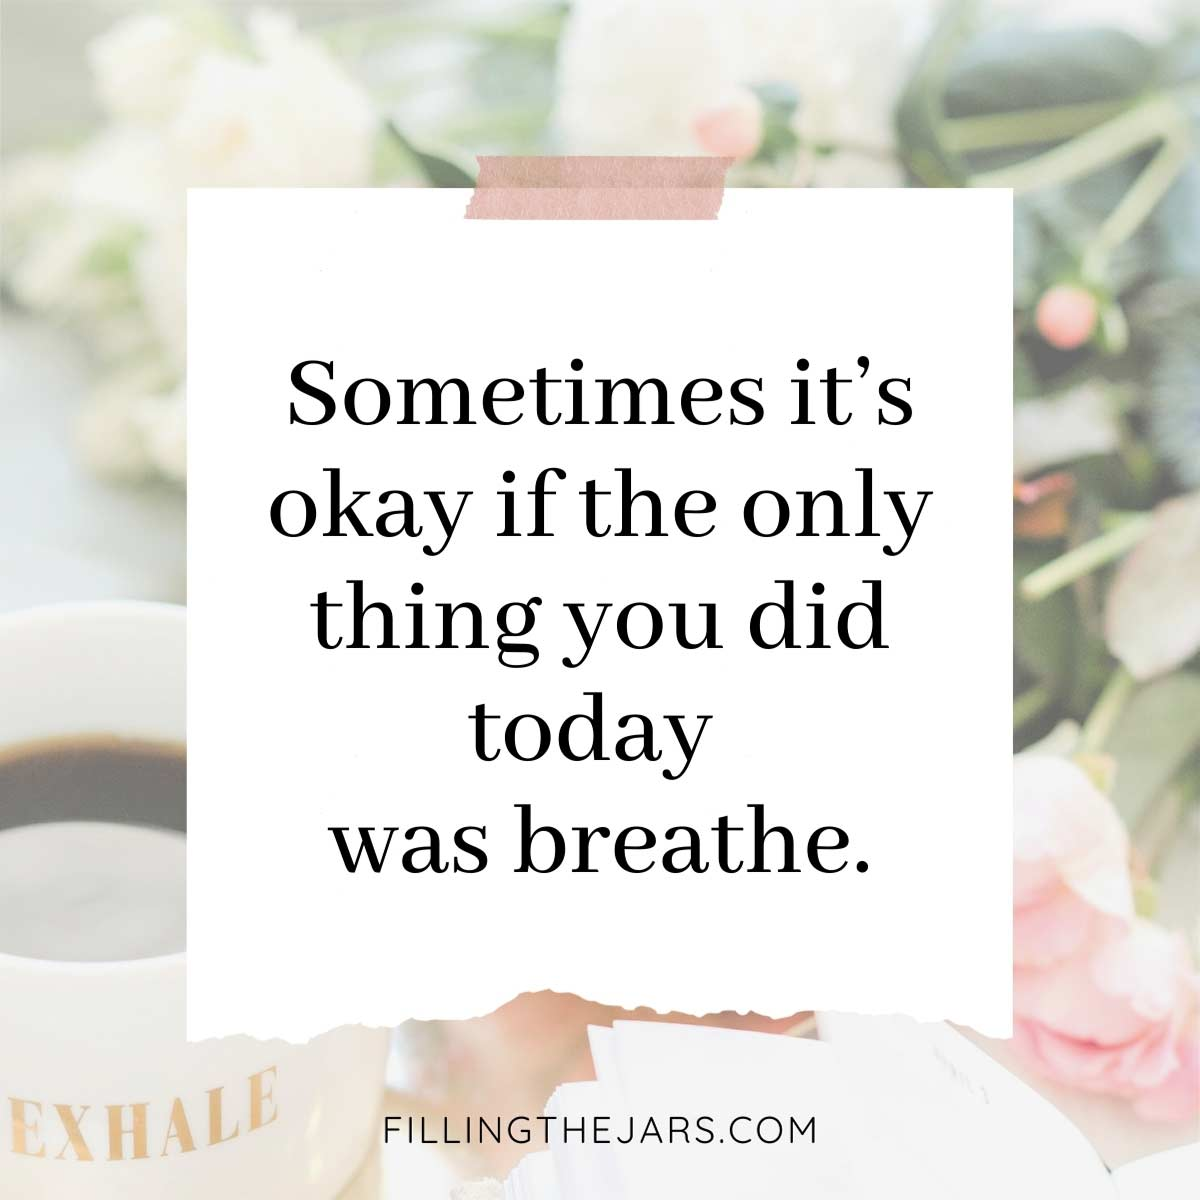 Breathe today quote on white paper-like background over image of flowers, coffee mug, and open journal.